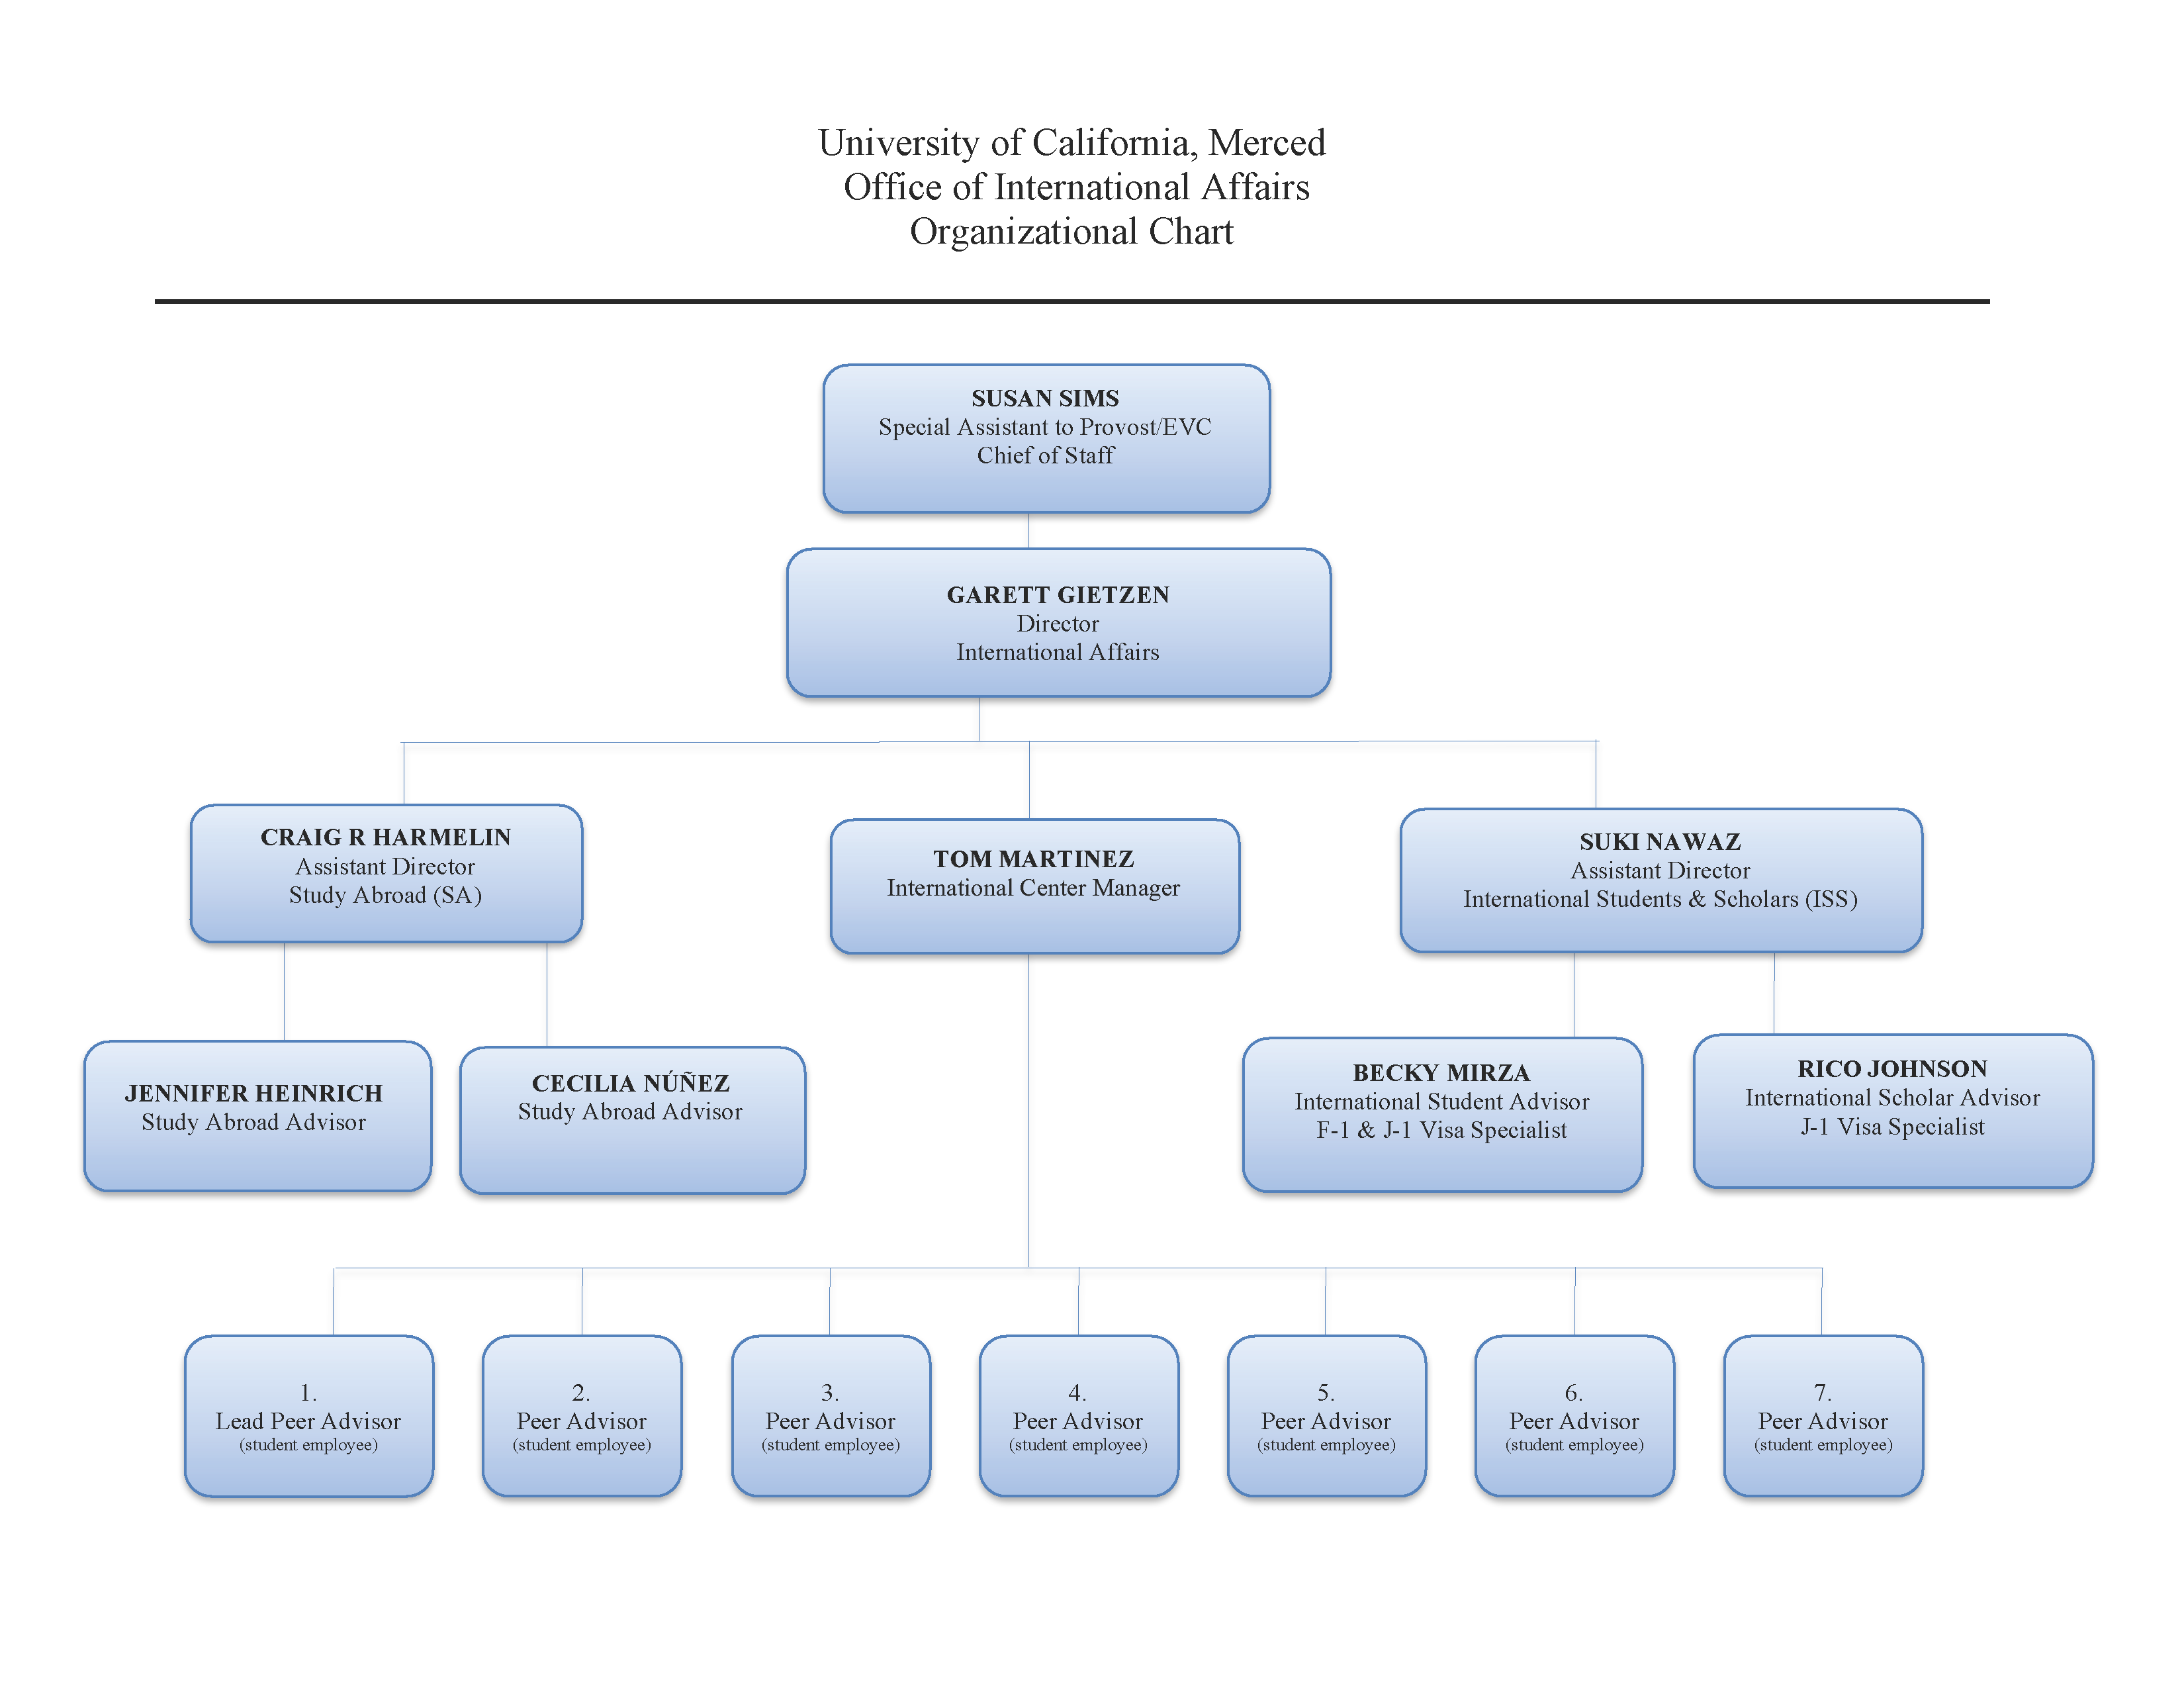 Org chart showing the organizational structure of UC Merced's Office of Internaional Affairs